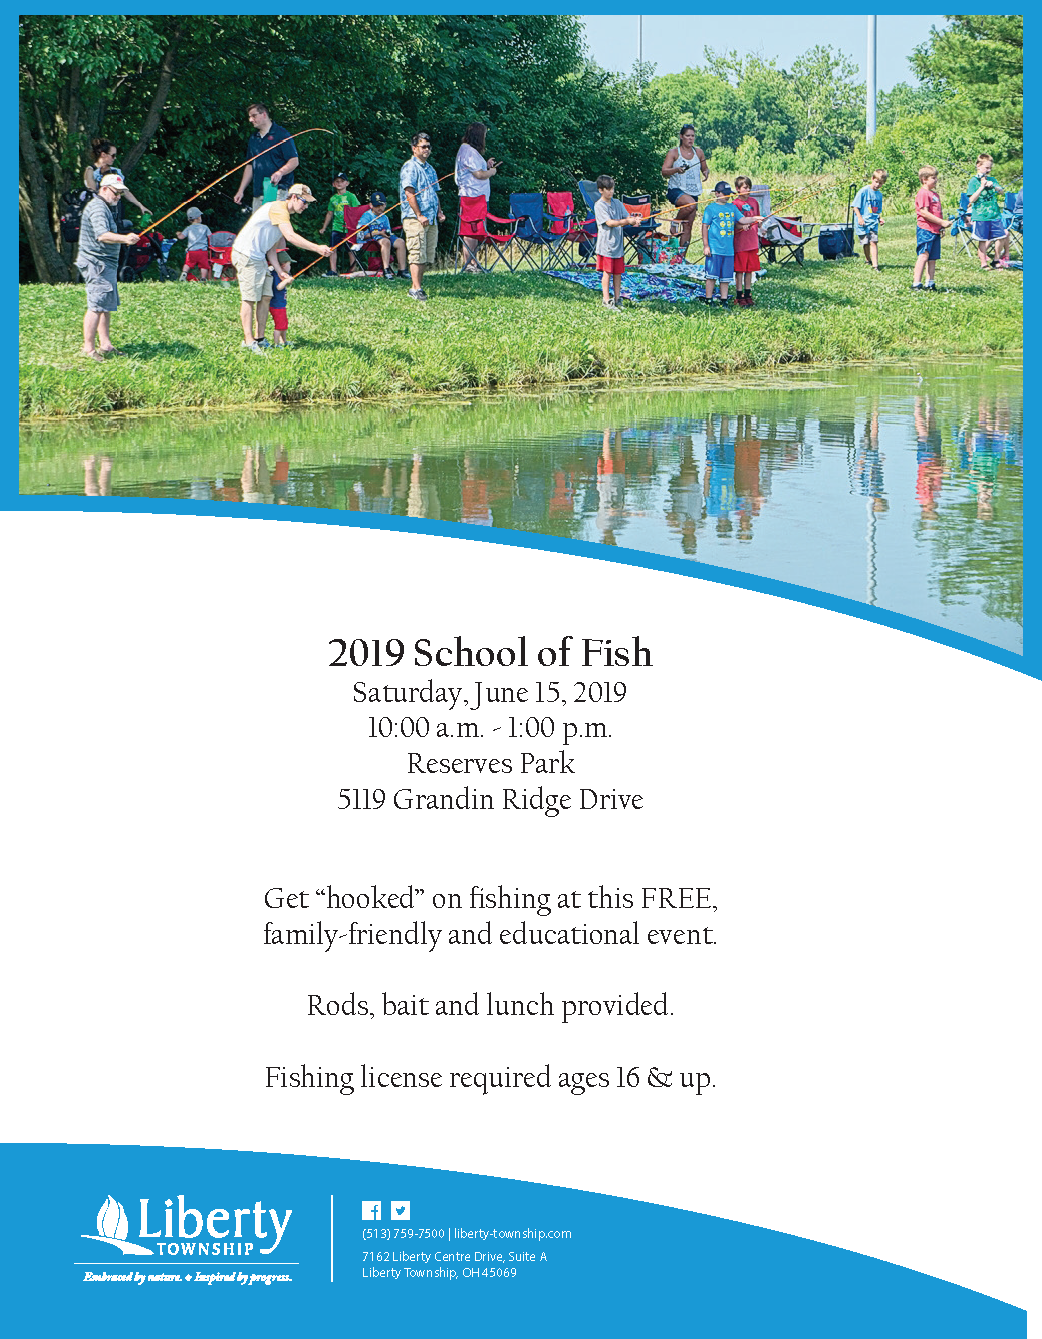 2019 School of Fish